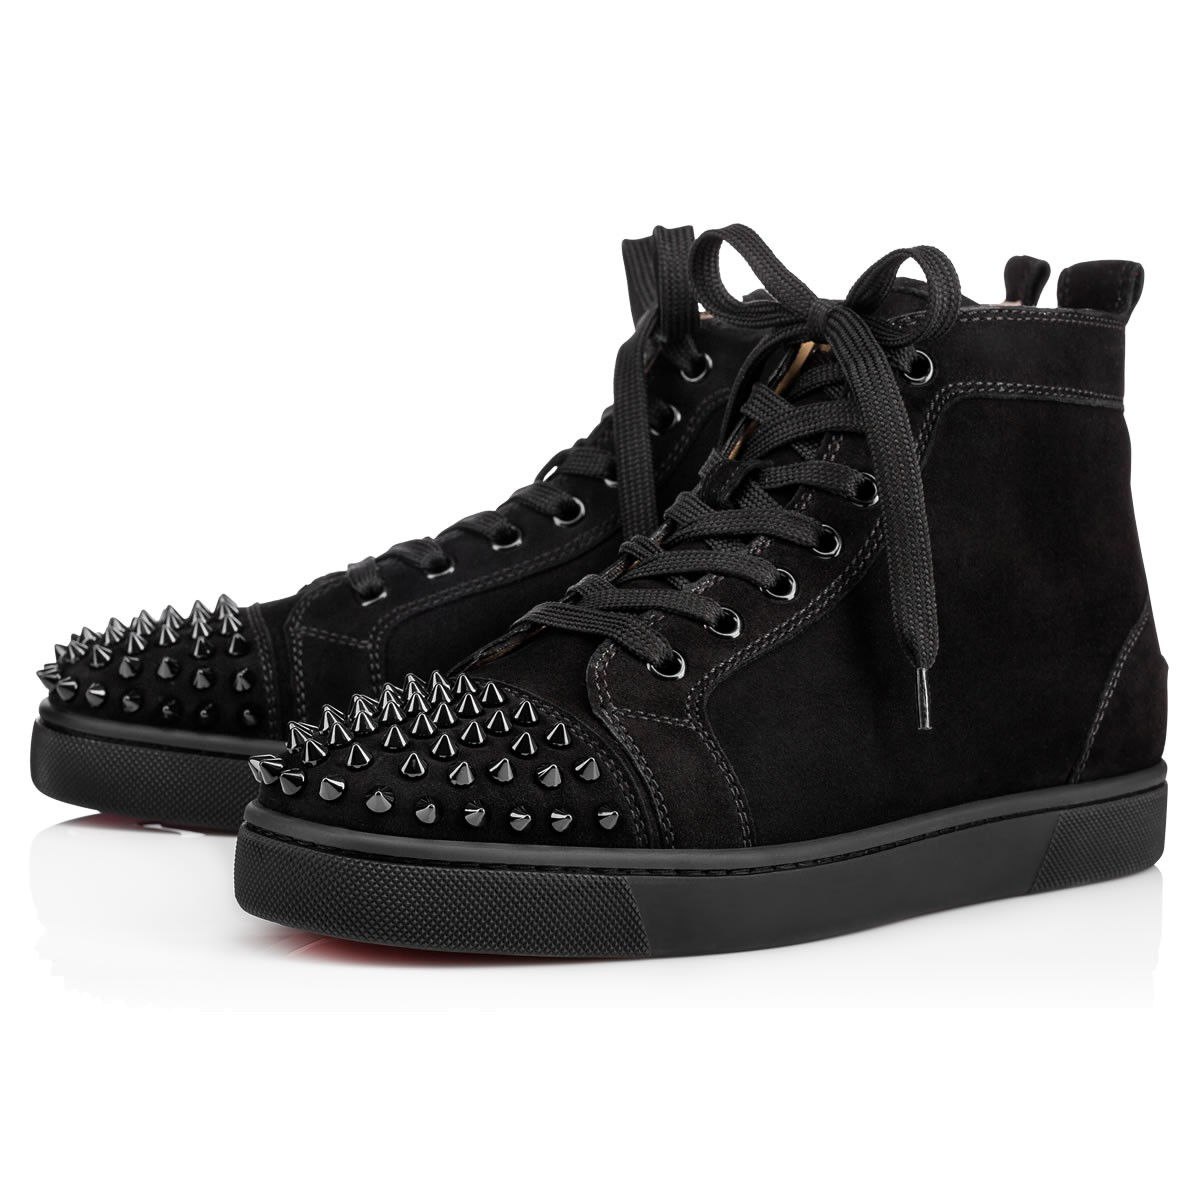 nouvelle chaussure louboutin homme